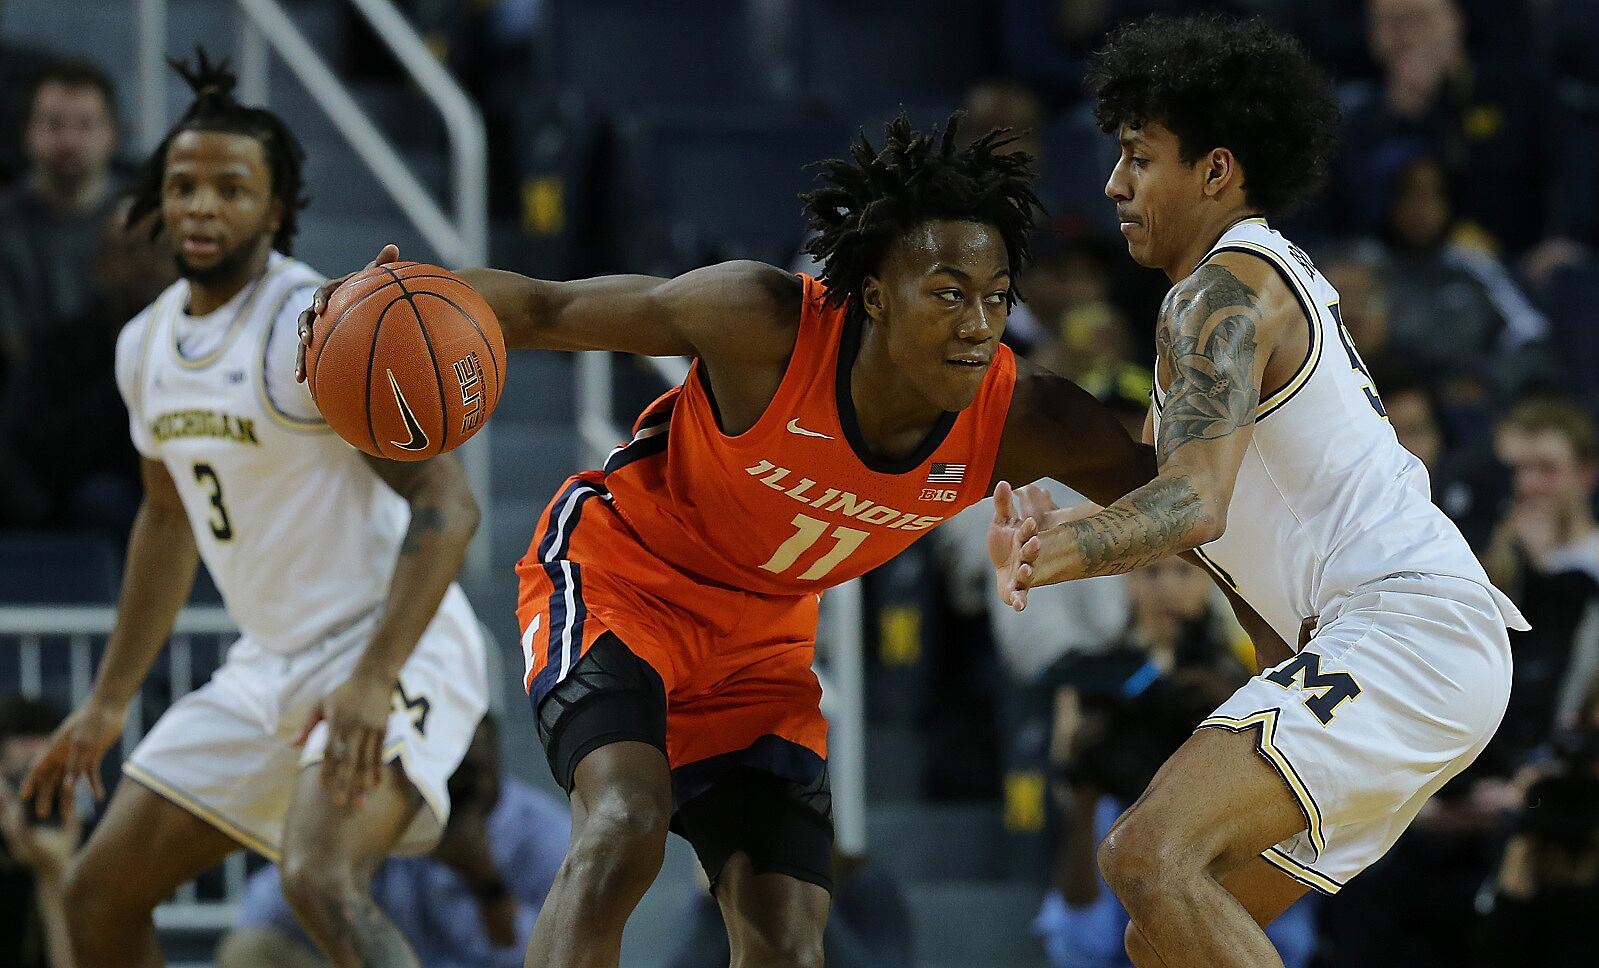 Michigan Basketball: 3 things we learned in costly loss to Illinois